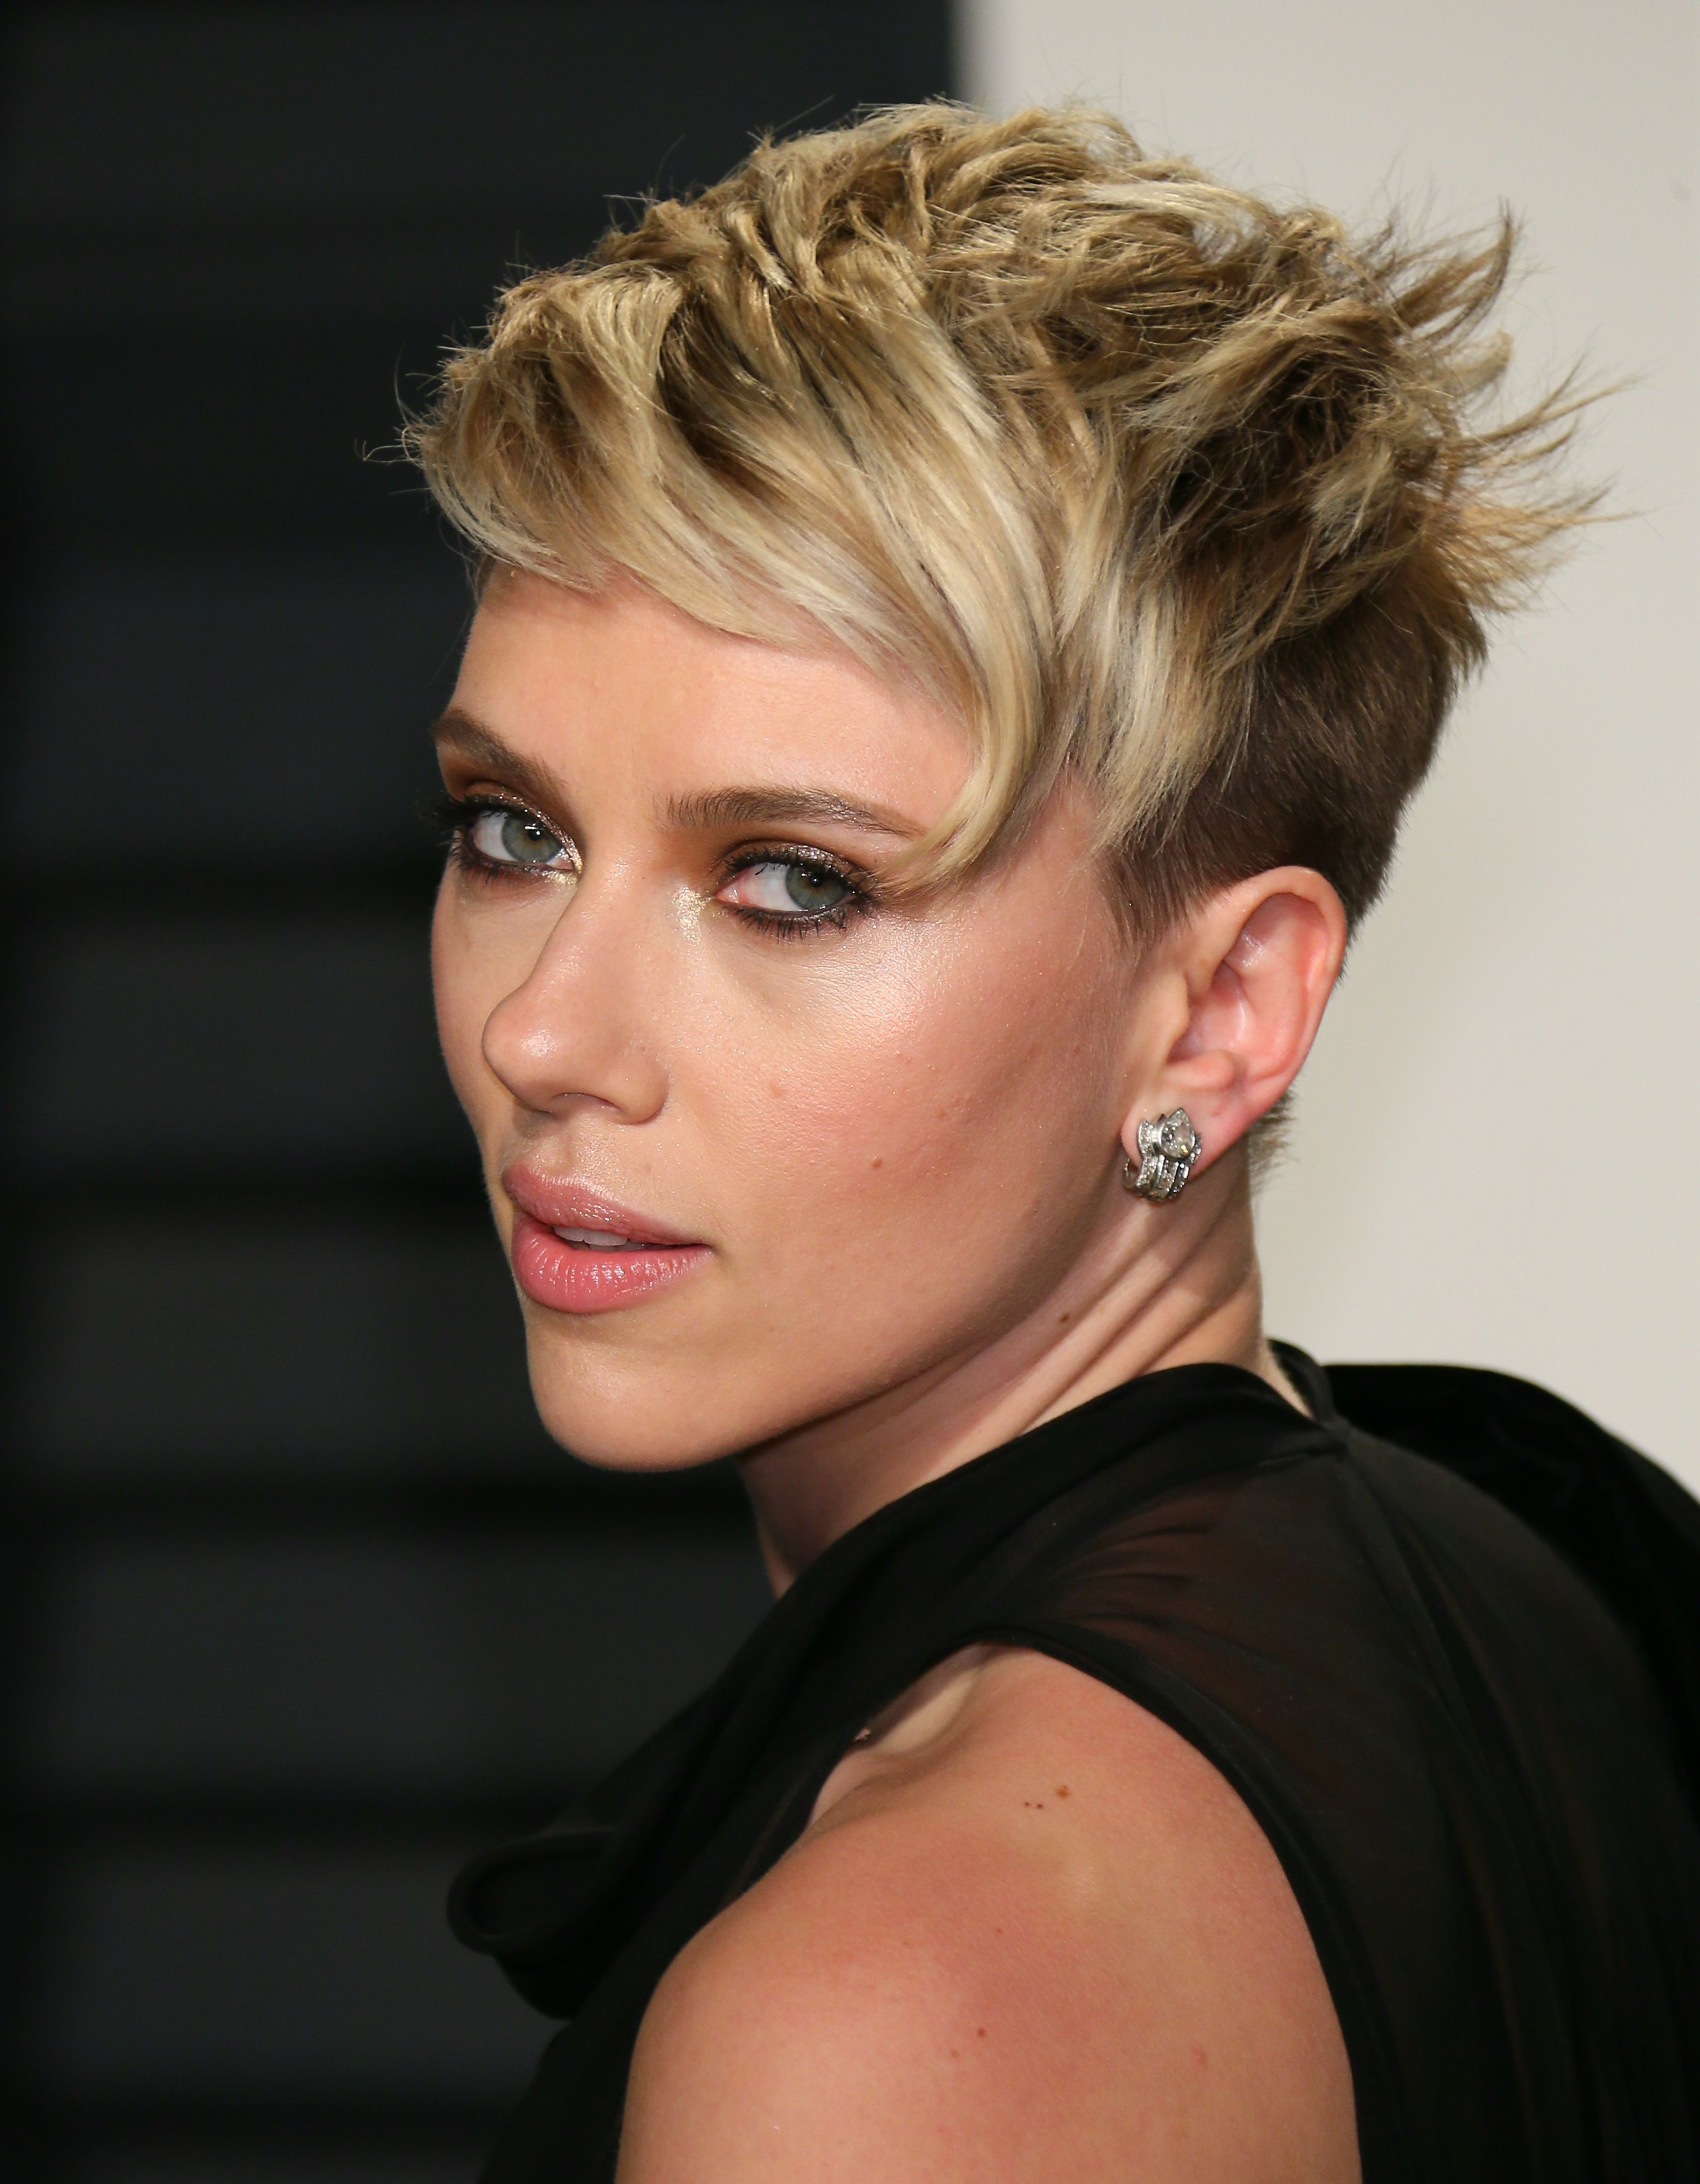 65 Best Short Hairstyles, Haircuts, And Short Hair Ideas For 2018 Regarding Feminine Short Hairstyles For Women (View 19 of 25)